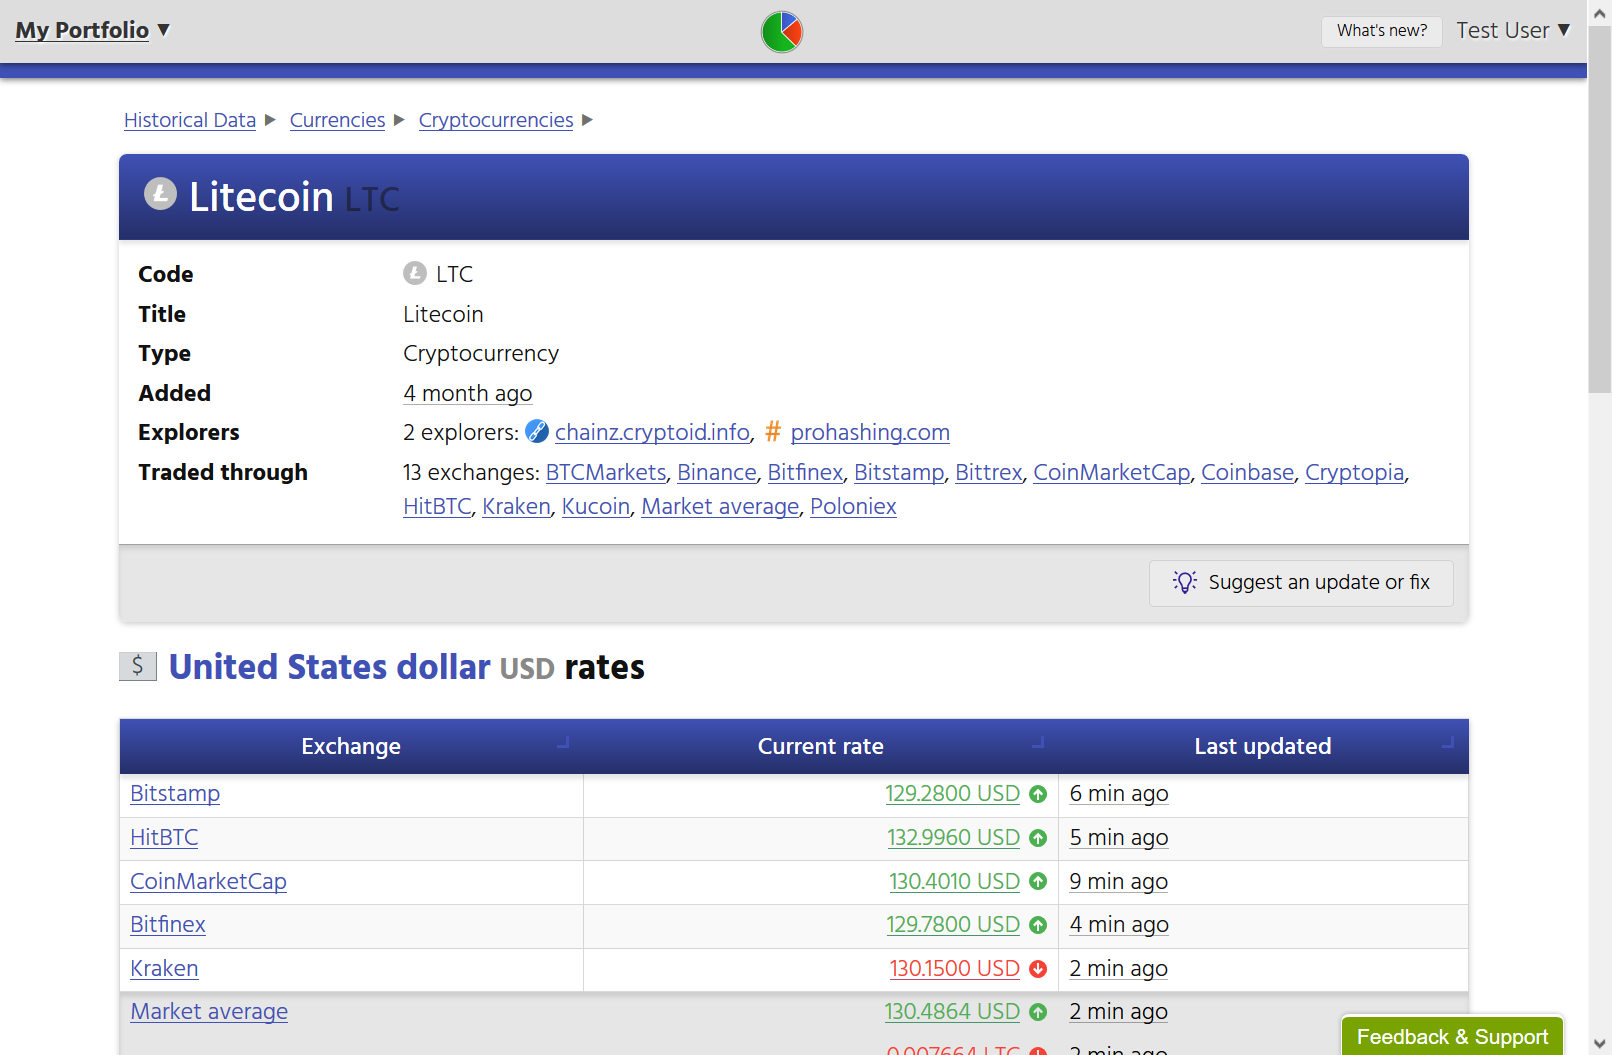 Screenshot showing technical information about Litecoin, including the explorers that can be used to browse Litecoin addresses; exchanges that trade in Litecoin; and current Litecoin/US Dollar rates.